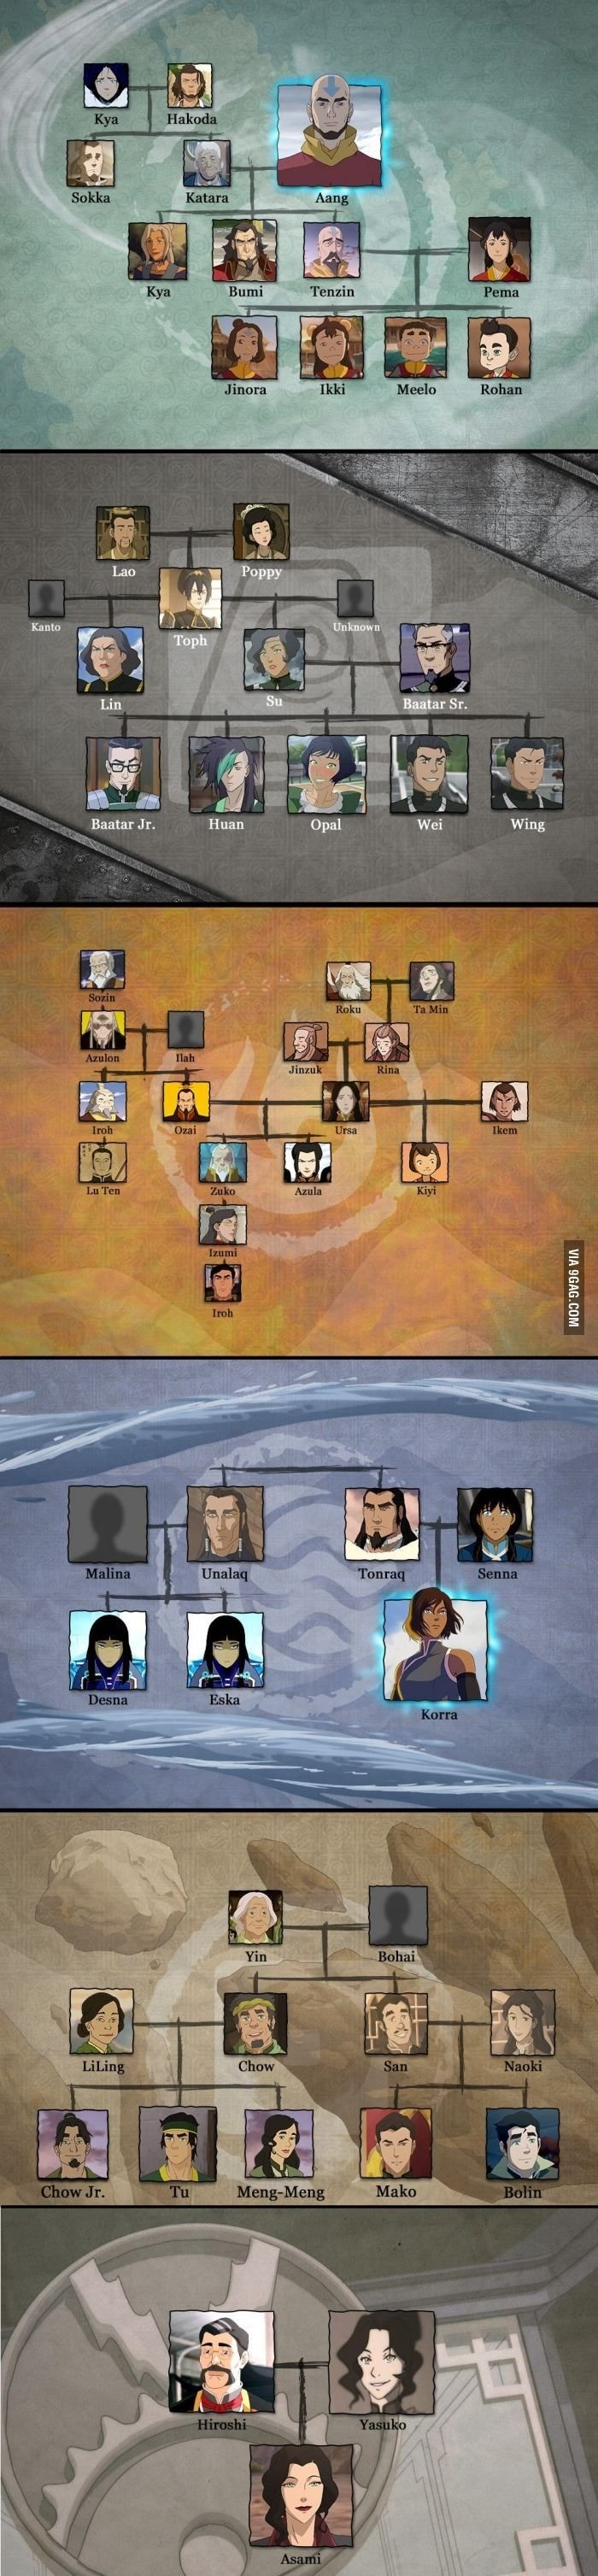 avatar family treea. .. Wait, Roku was Zuko's great-grandfather? That's kinda cool. Wonder if Aang ever found out.